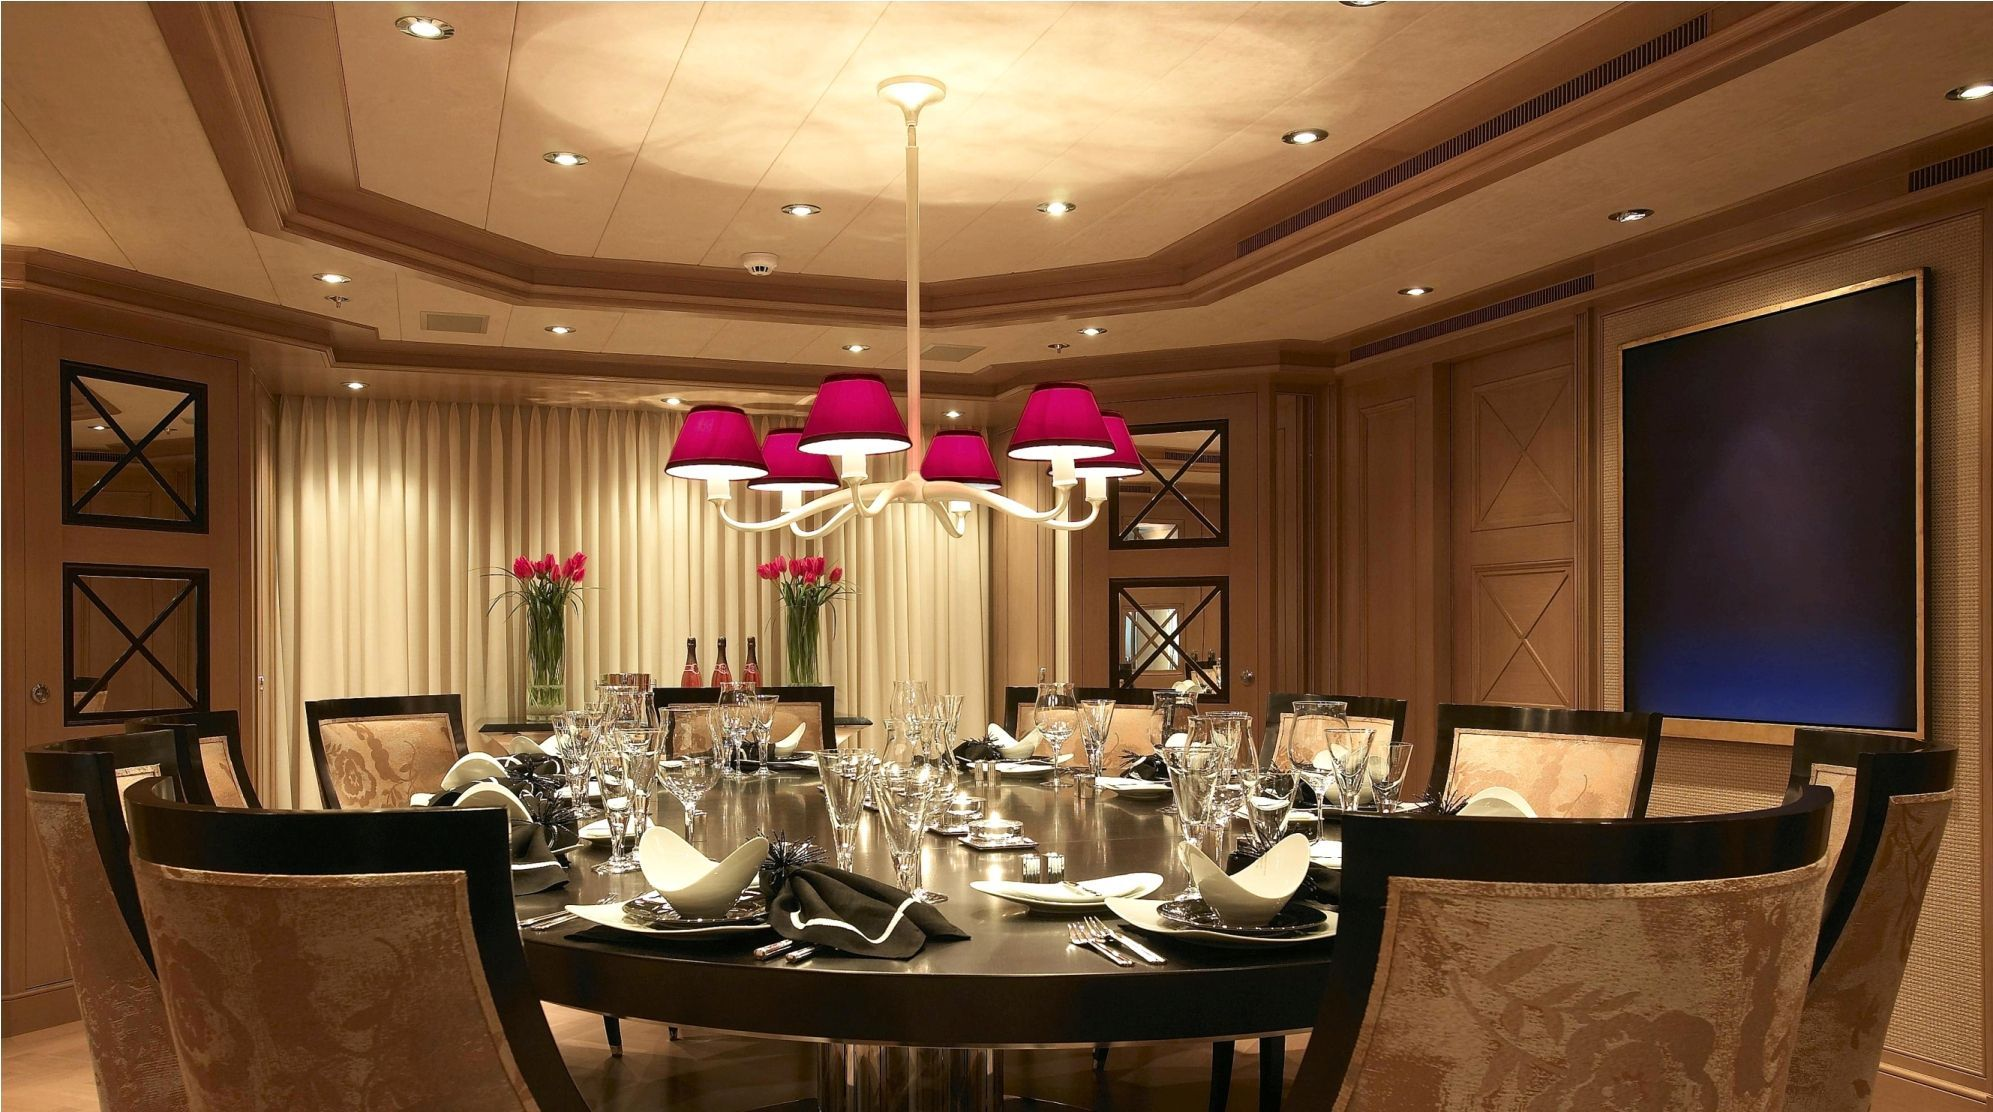 Elegant Dining Room Chandeliers Pleasing Dining Room Urban Dining Room Lighting Ultra Modern Dining Room Design Decoration